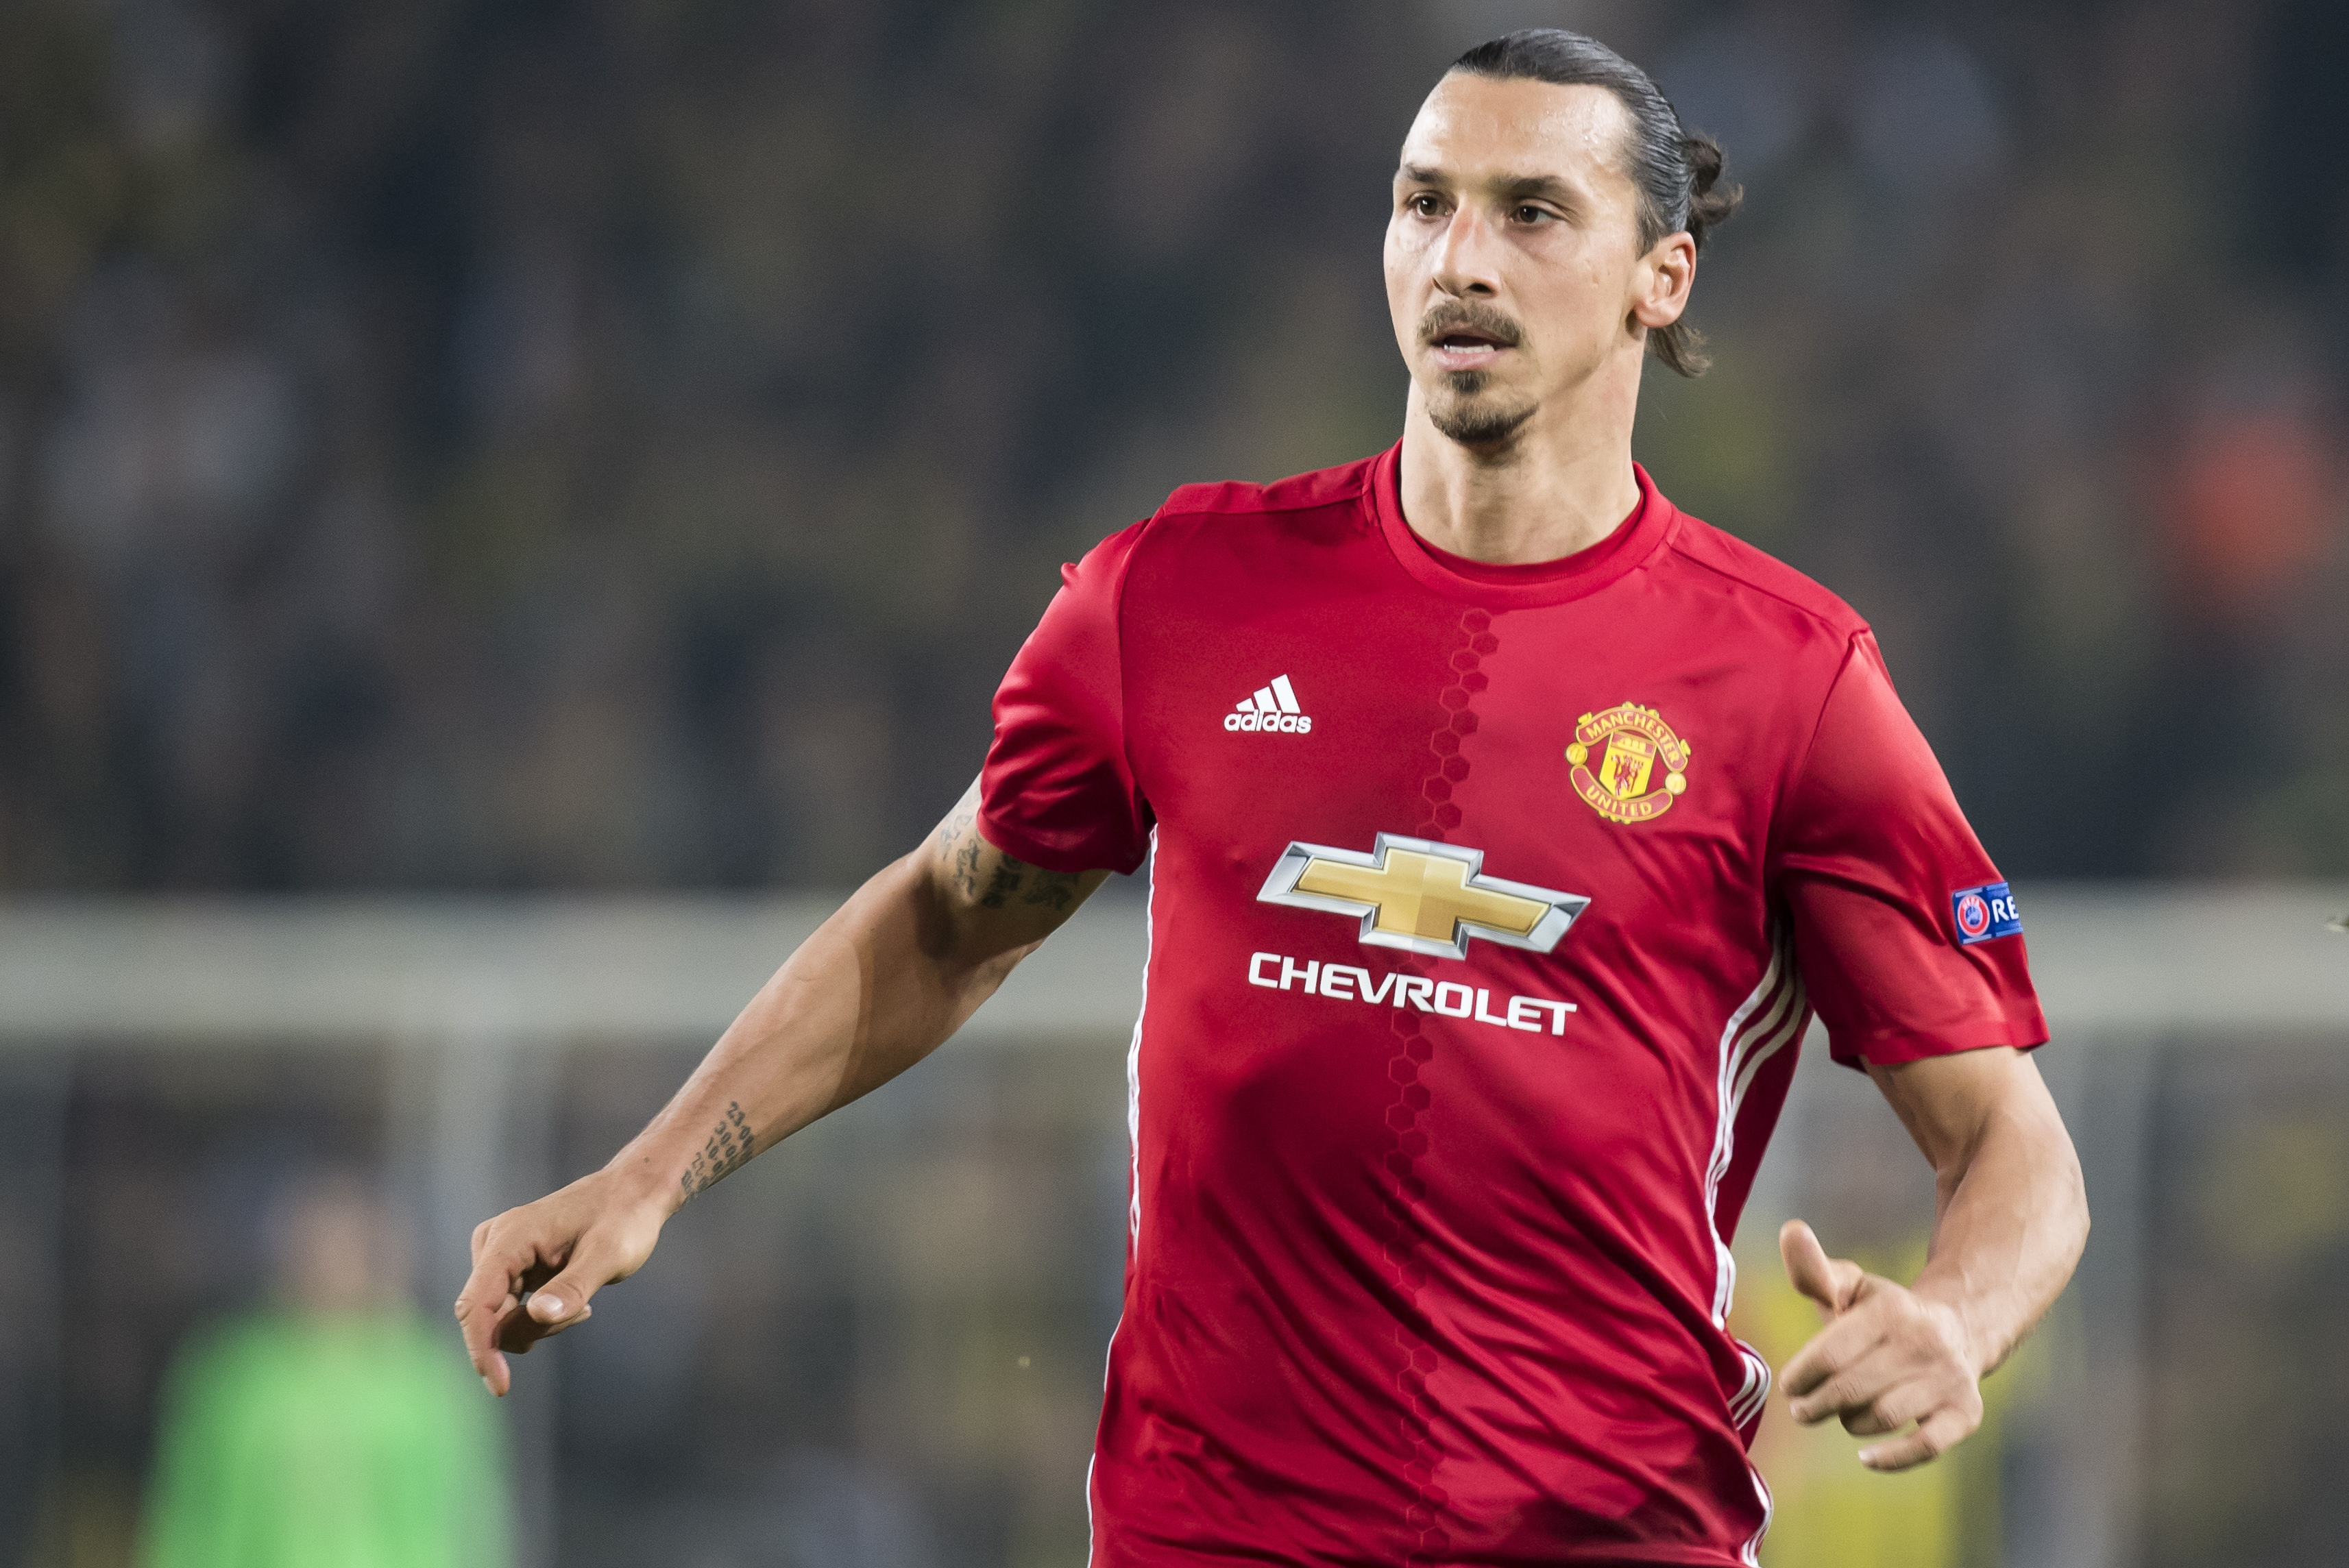 Manchester United's Zlatan Ibrahimovic to be offered LA Galaxy transfer